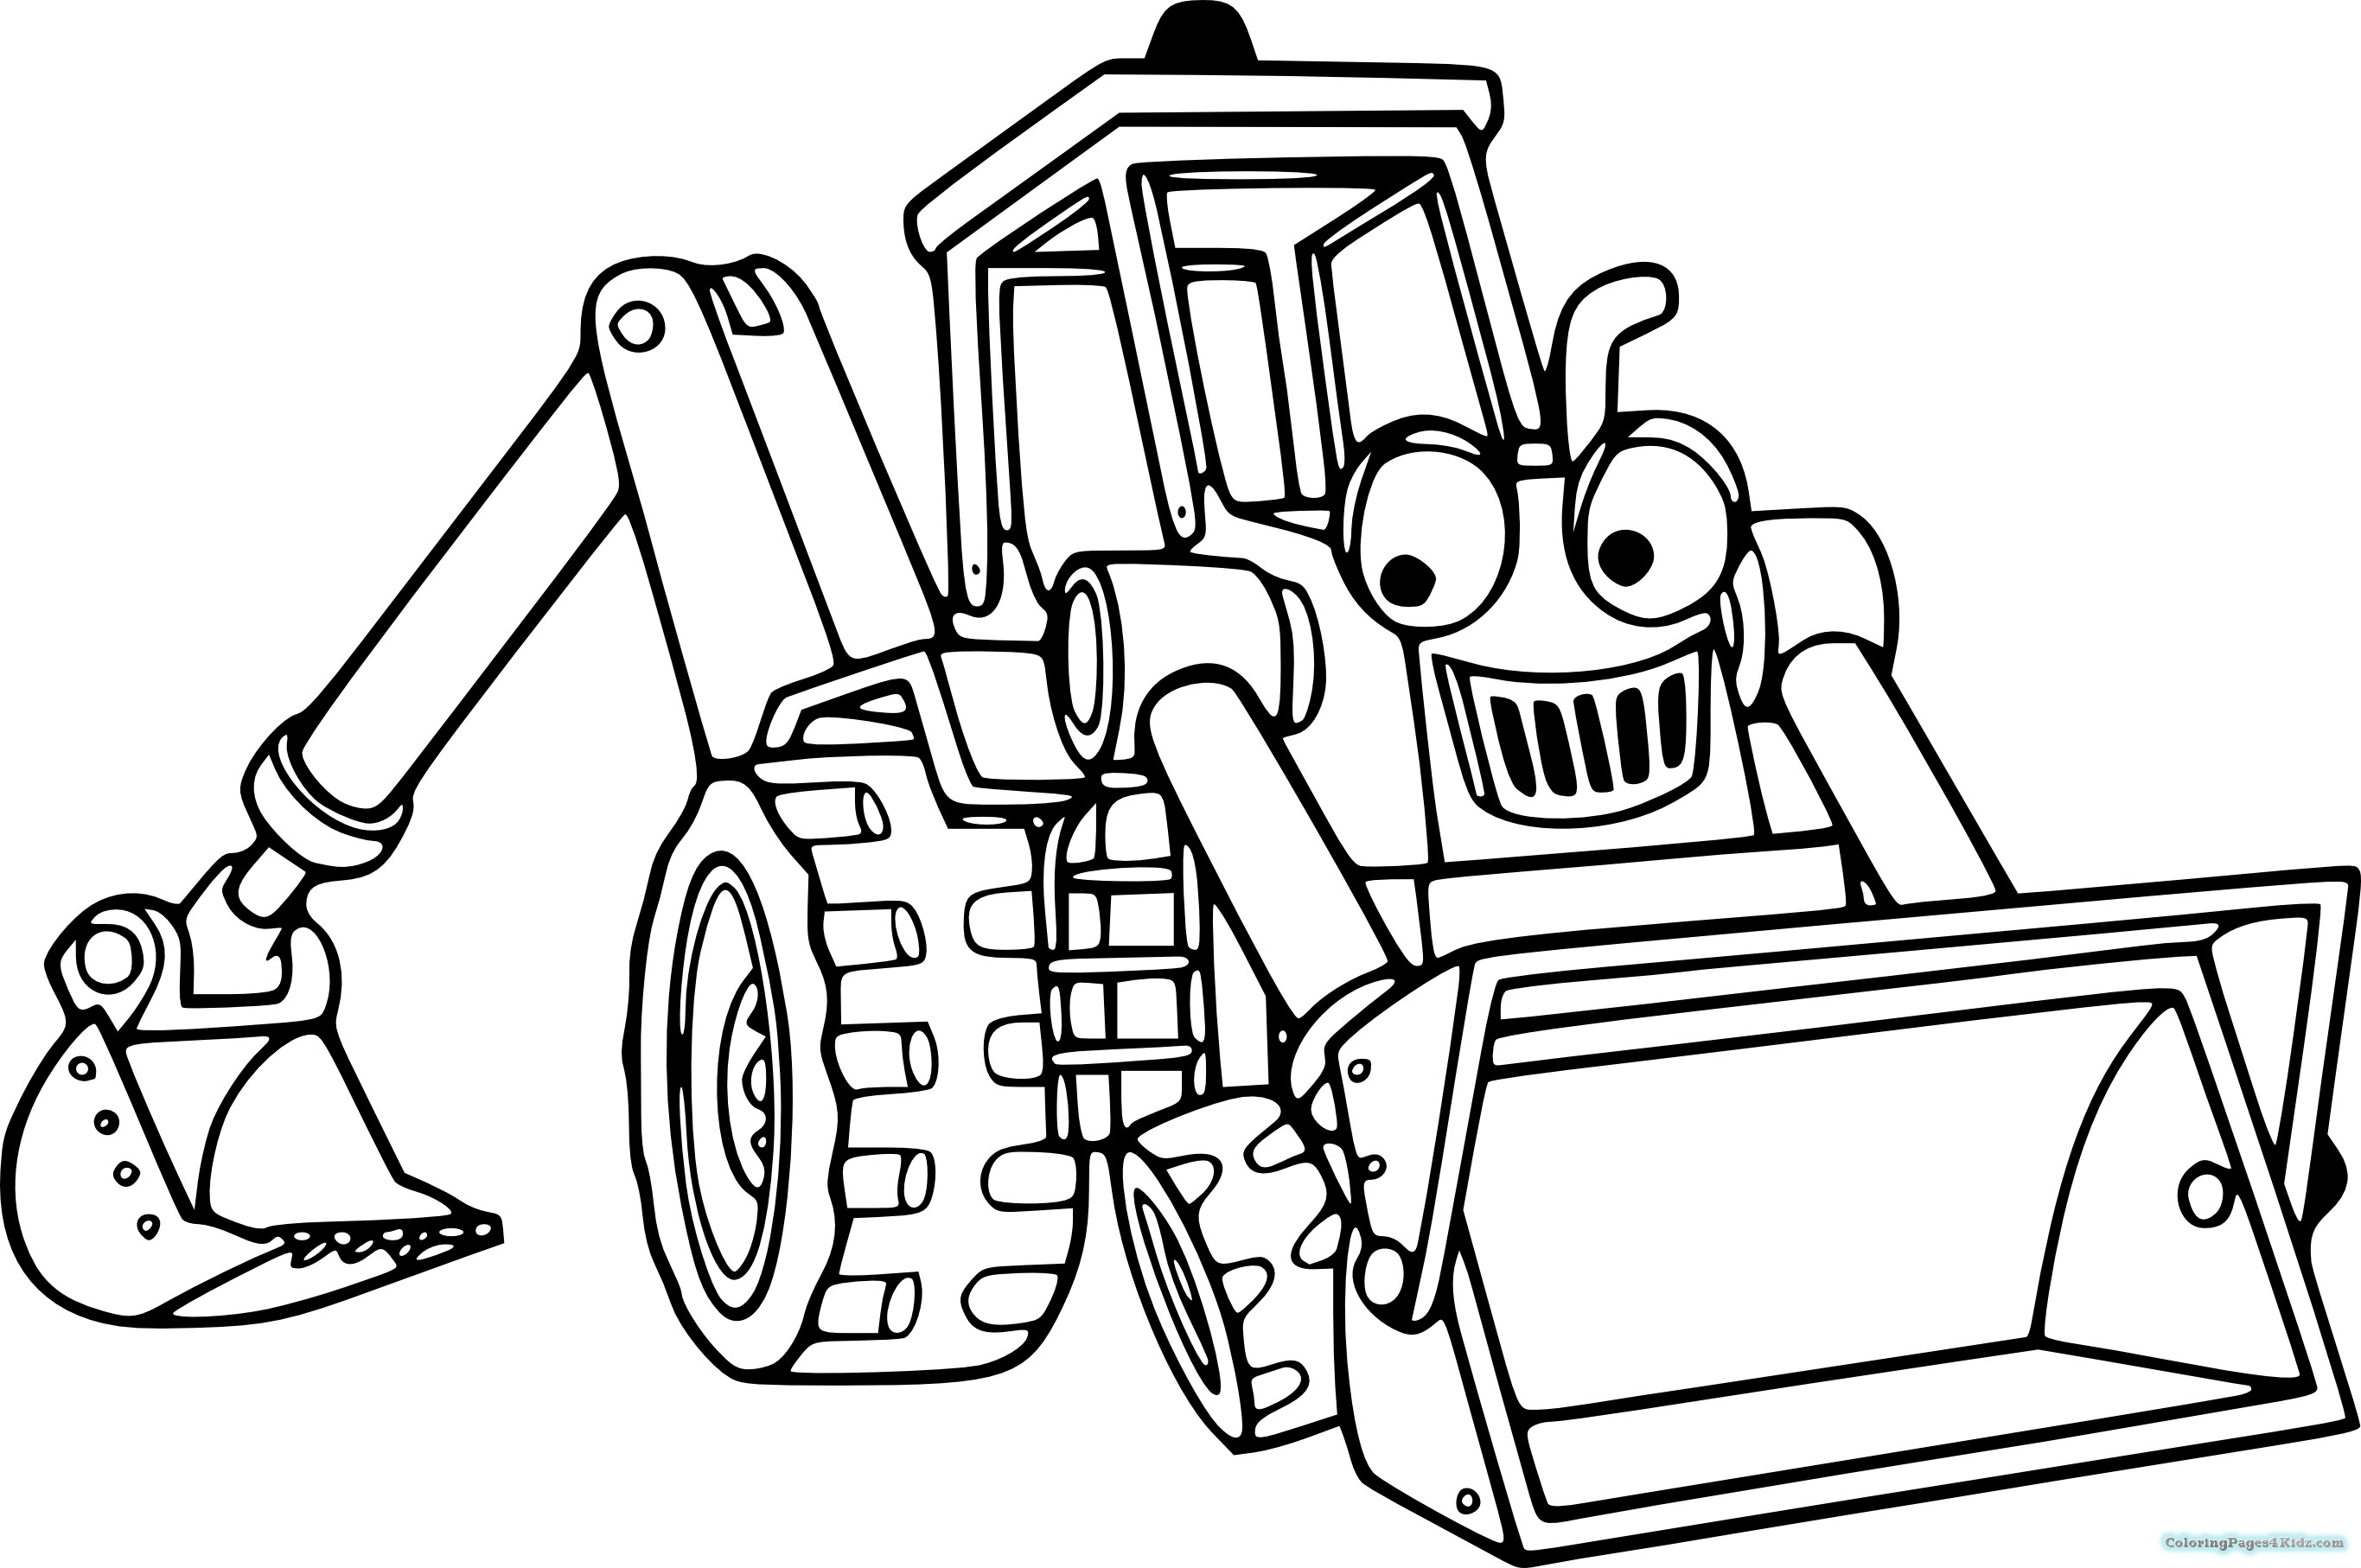 tractor coloring sheets tractor coloring pages coloring pages to print sheets tractor coloring